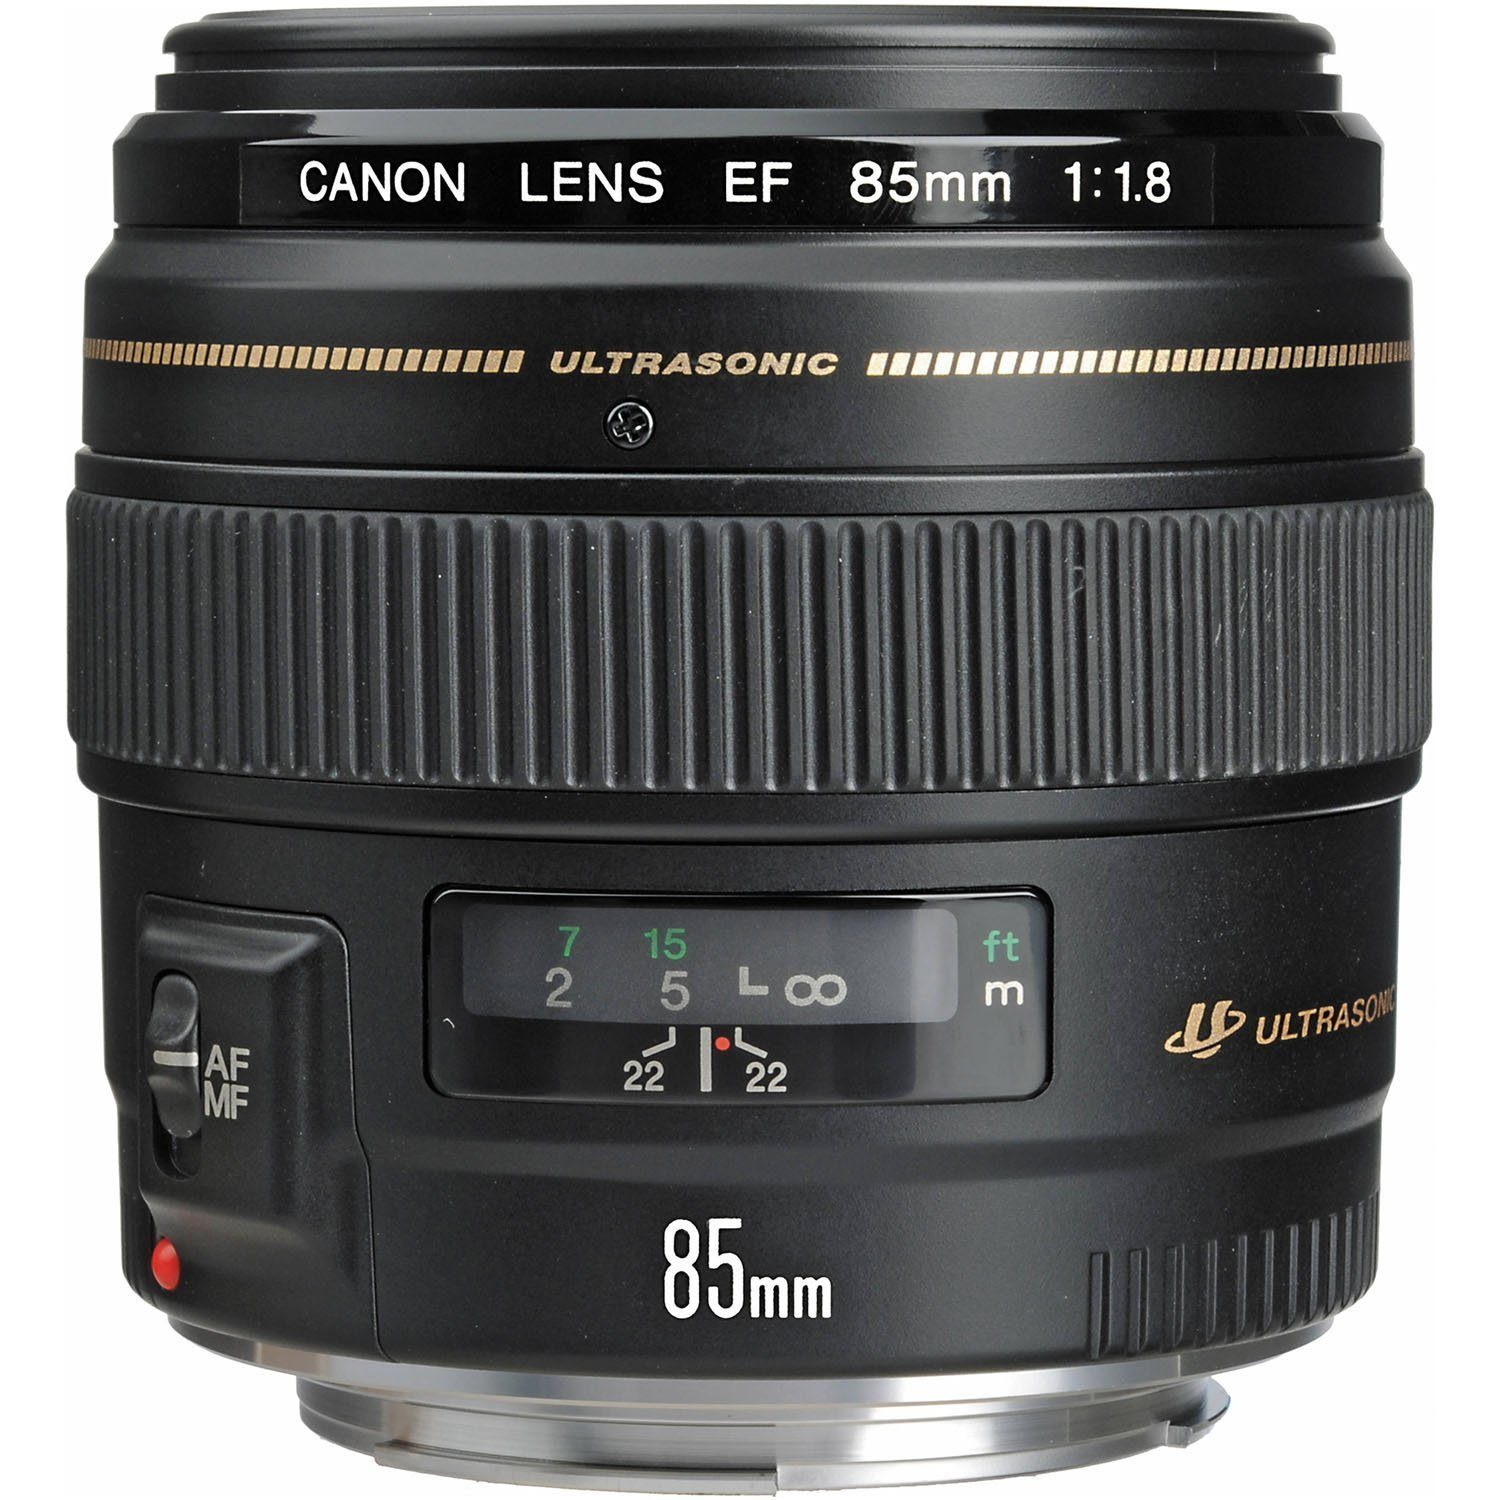 canon 85mm f/1.8 travel lens